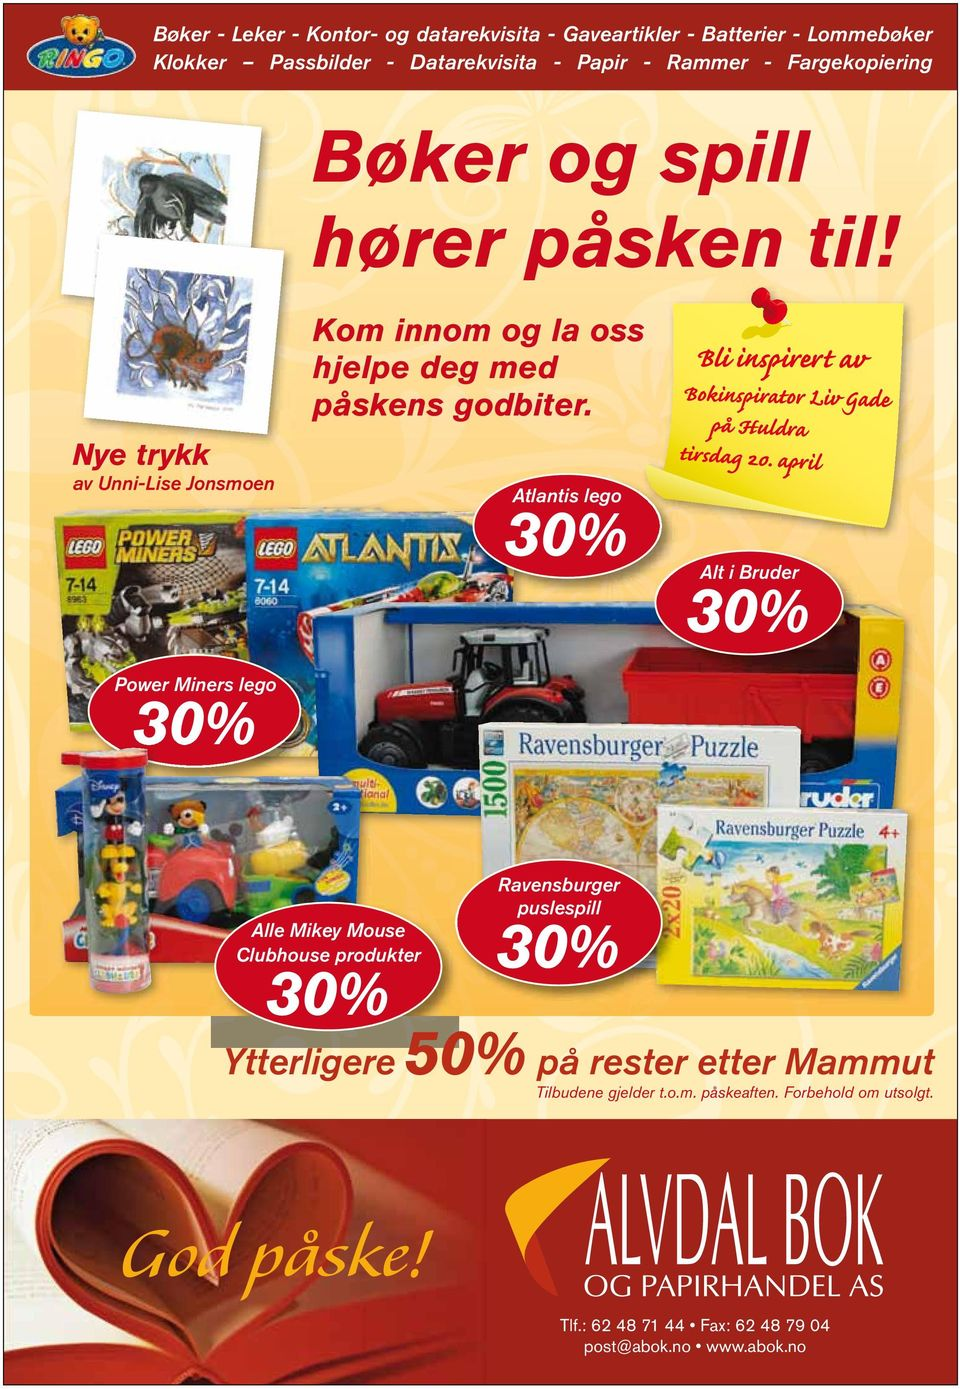 Atlantis lego 30% Alt i Bruder 30% Power Miners lego 30% Alle Mikey Mouse Clubhouse produkter 30% Ravensburger puslespill 30% Ytterligere